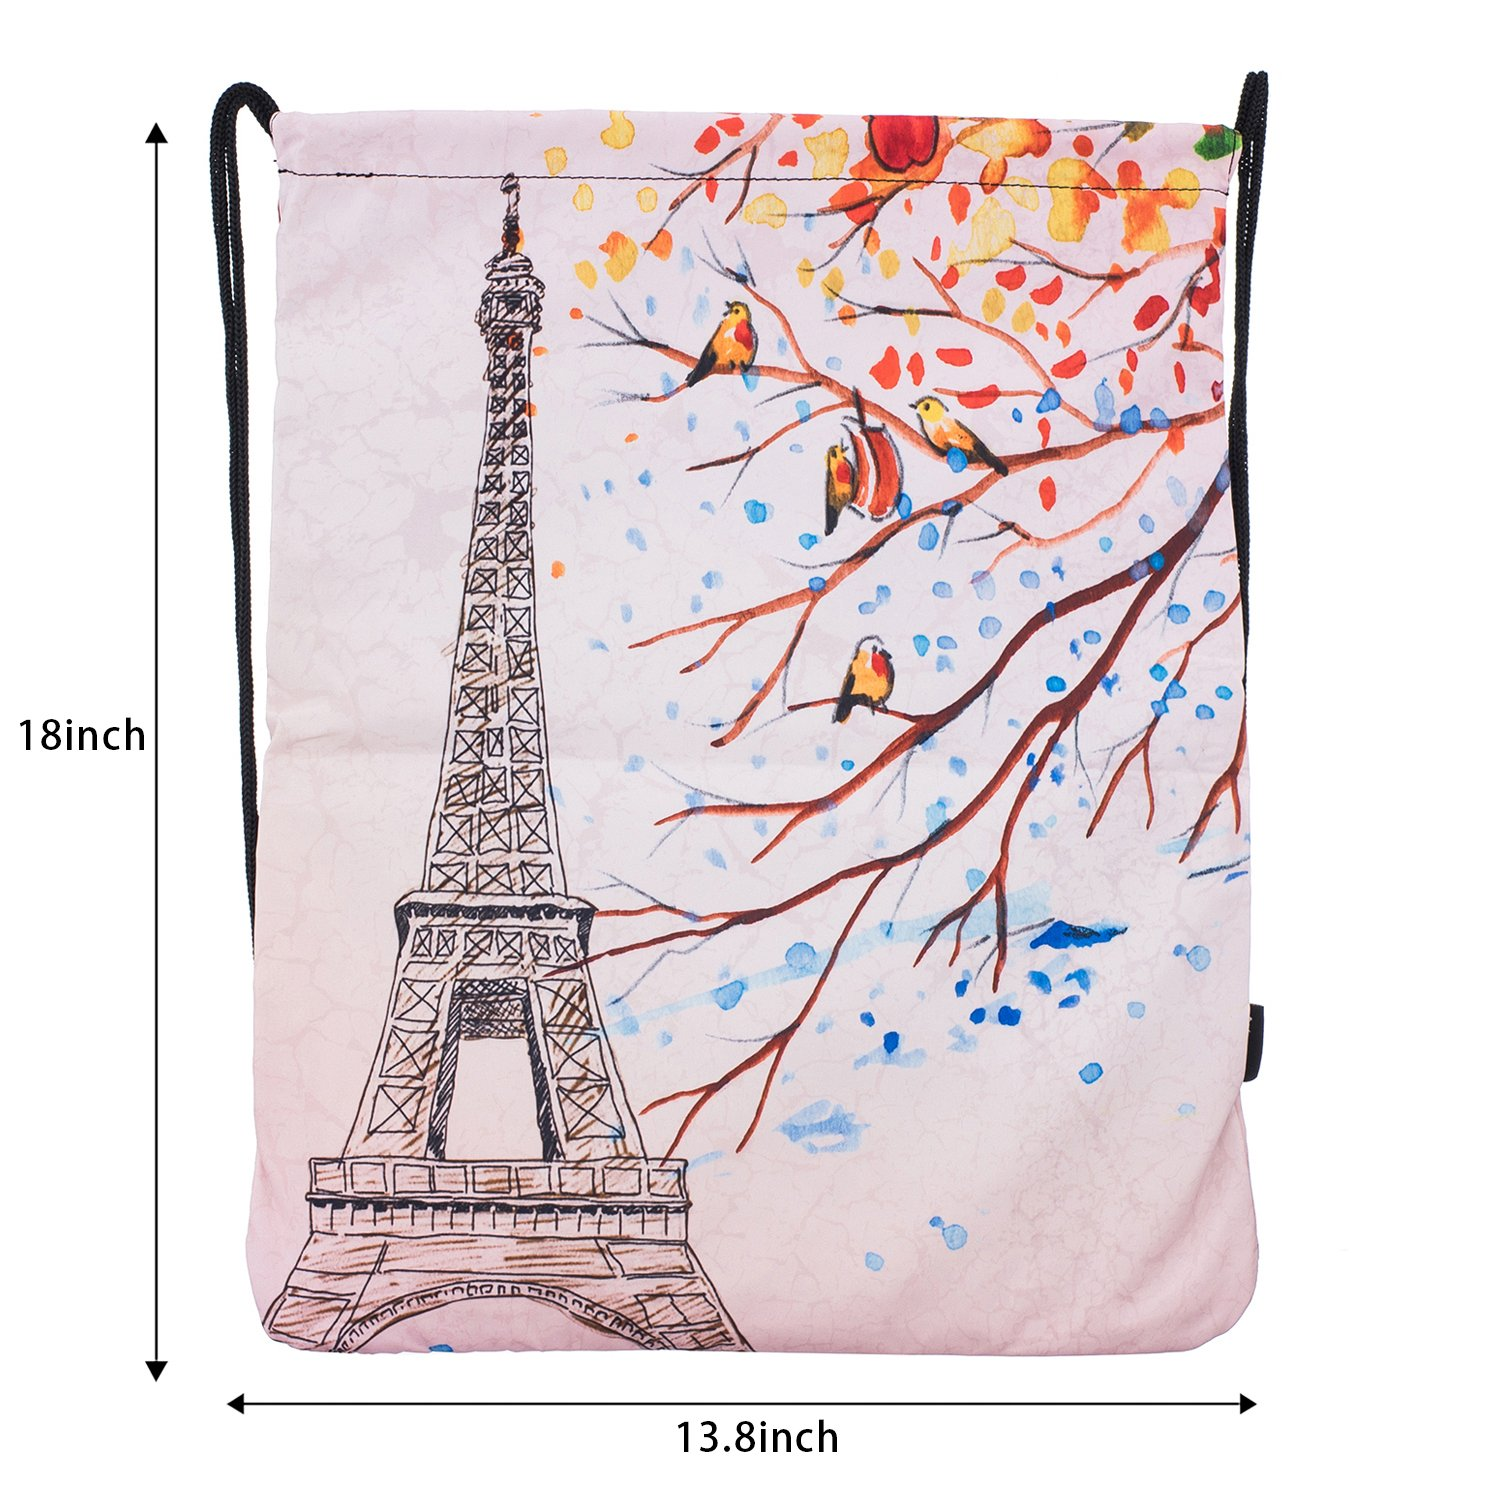 iColor Sport Sackpack,Drawstring Backpack,Stylish Multipurpose Girls Nylon Gym Bags,Teen Yoga Dance Bag,Lightweight Gym Bag for Women Cycling Hiking,Gymsack Travel Daypack 18'' x 13.8'' (Eiffel Tower) by iColor (Image #2)